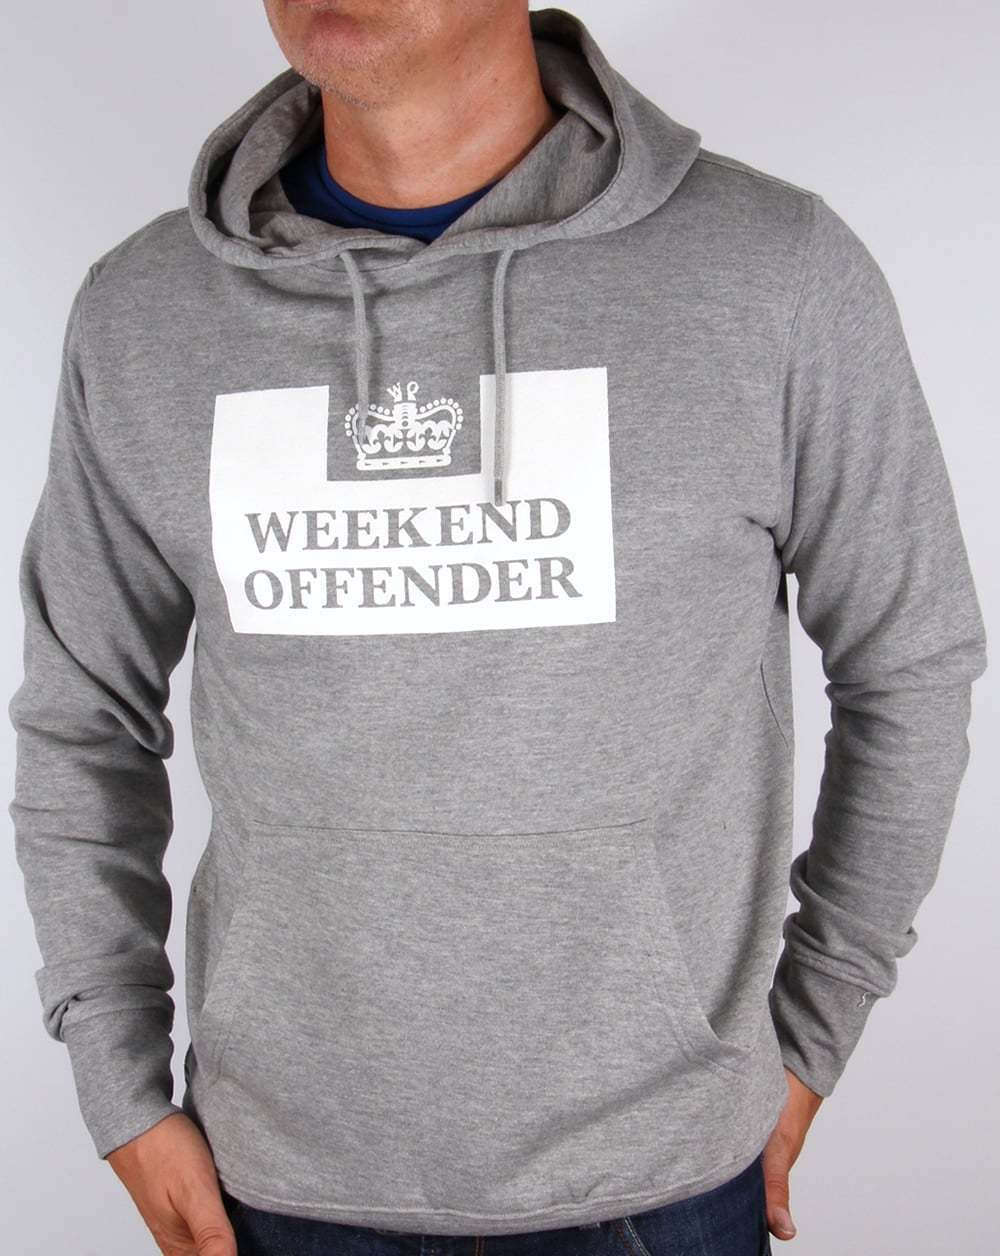 Weekend Offender HM Service Hoody in Grau - hoodie hooded sweat prison logo